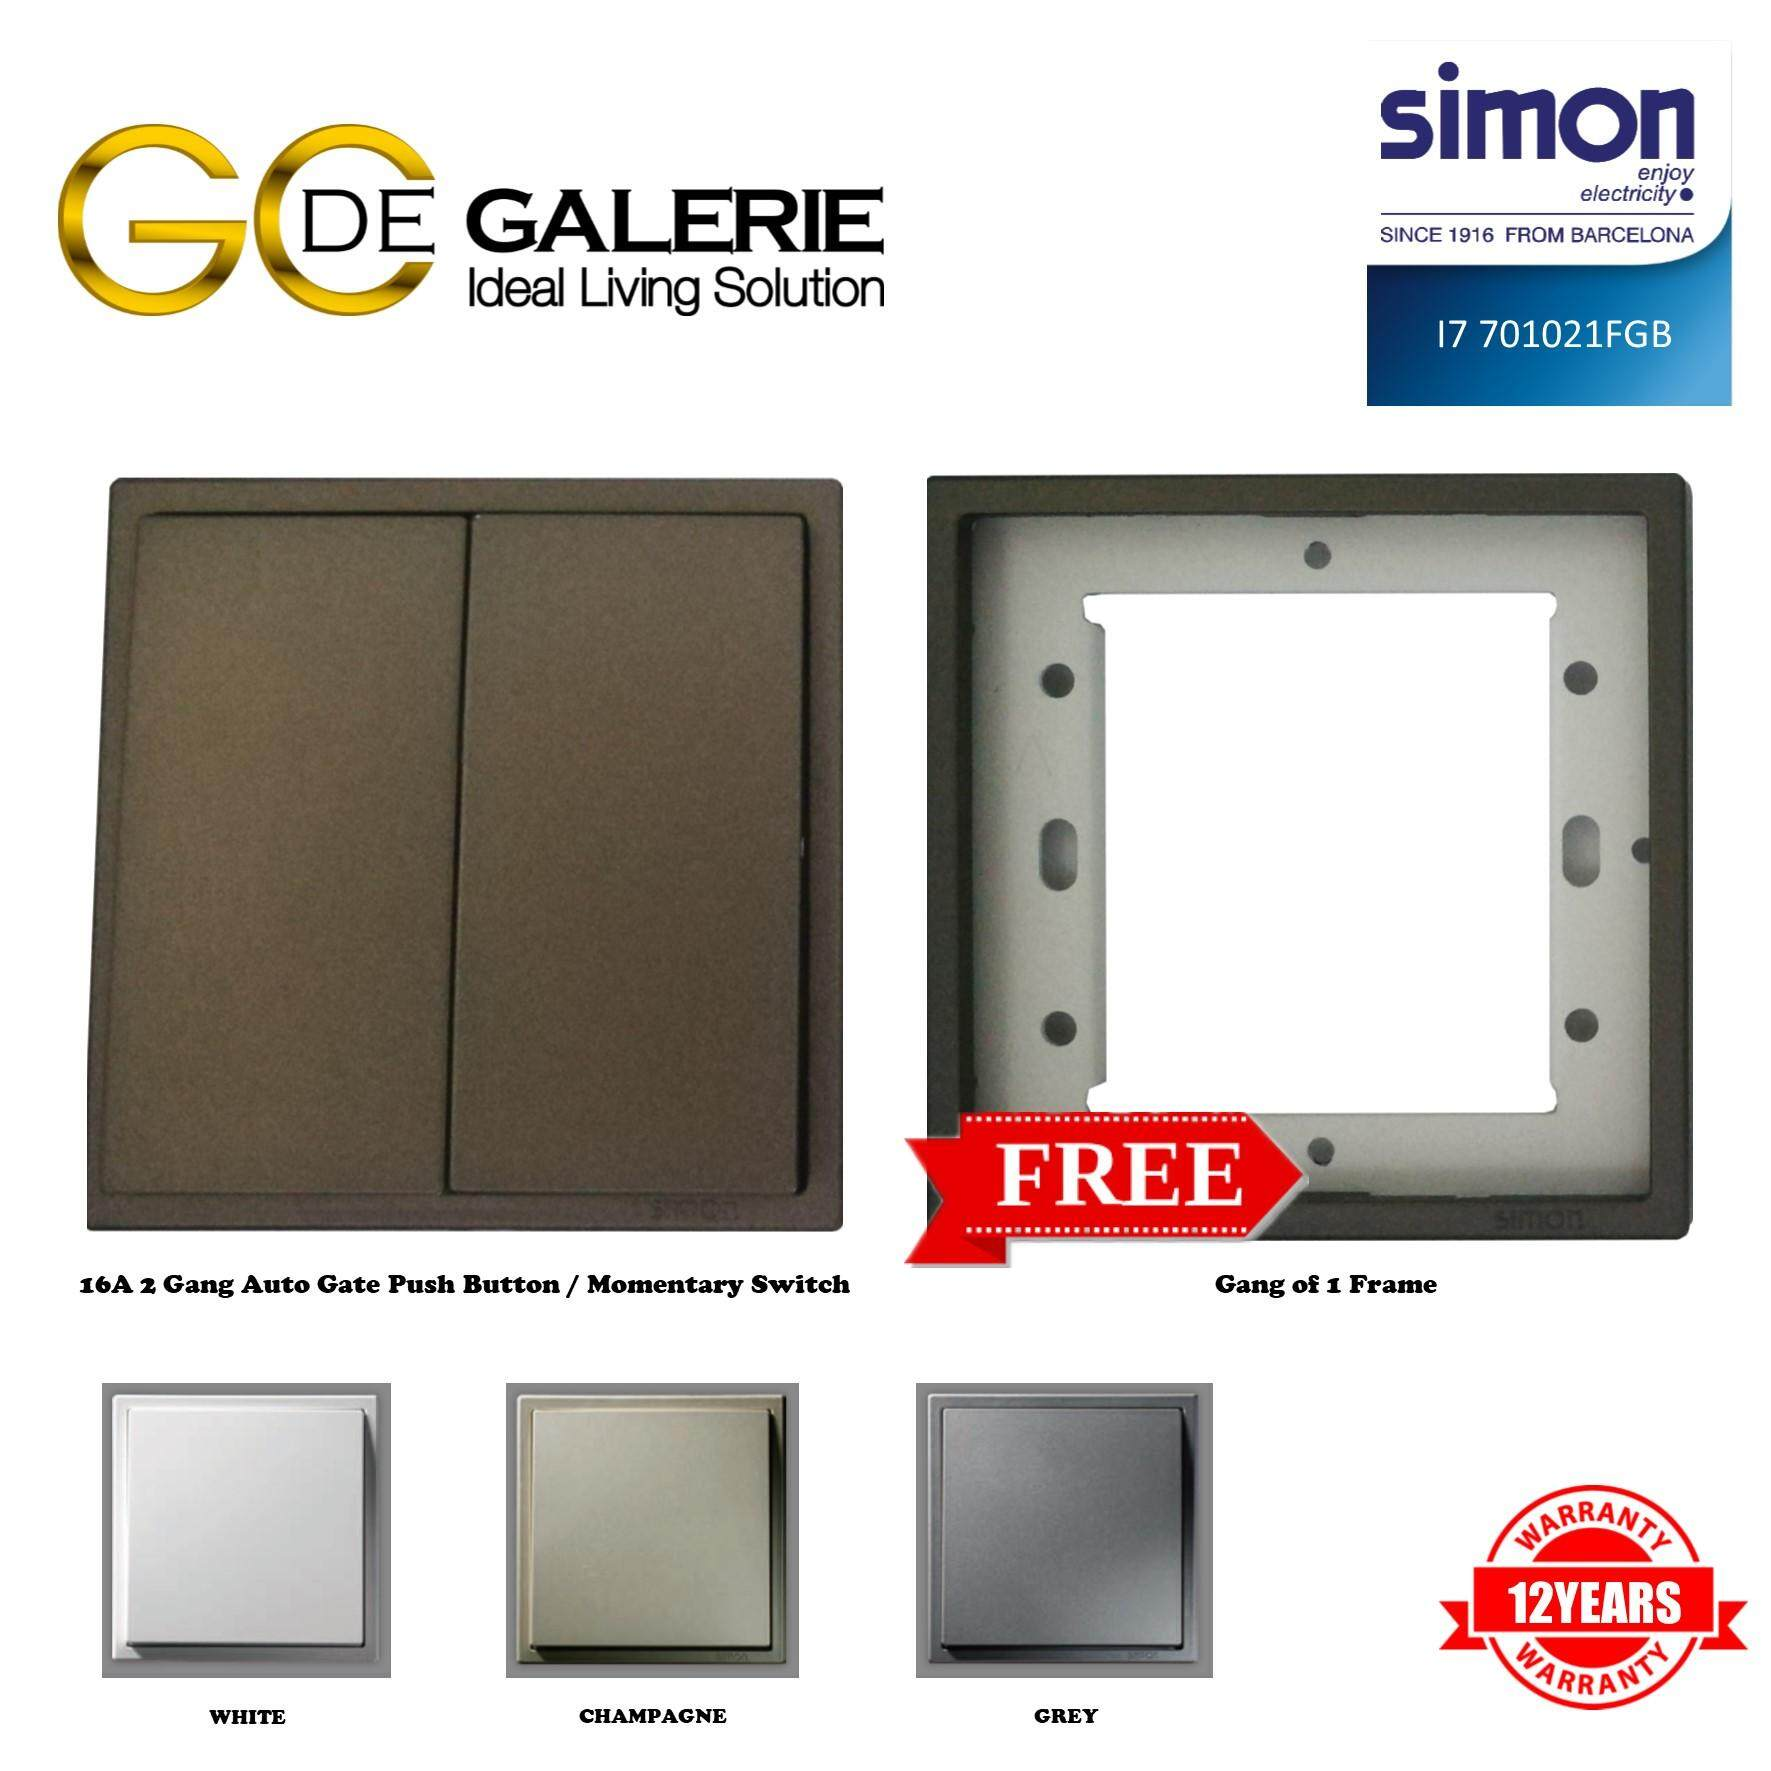 SIMON i7 SERIES 701021F 2 GANG AUTO GATE PUSH BUTTON / MOMENTARY GRAPHITE BLACK FREE 1 GANG FRAME